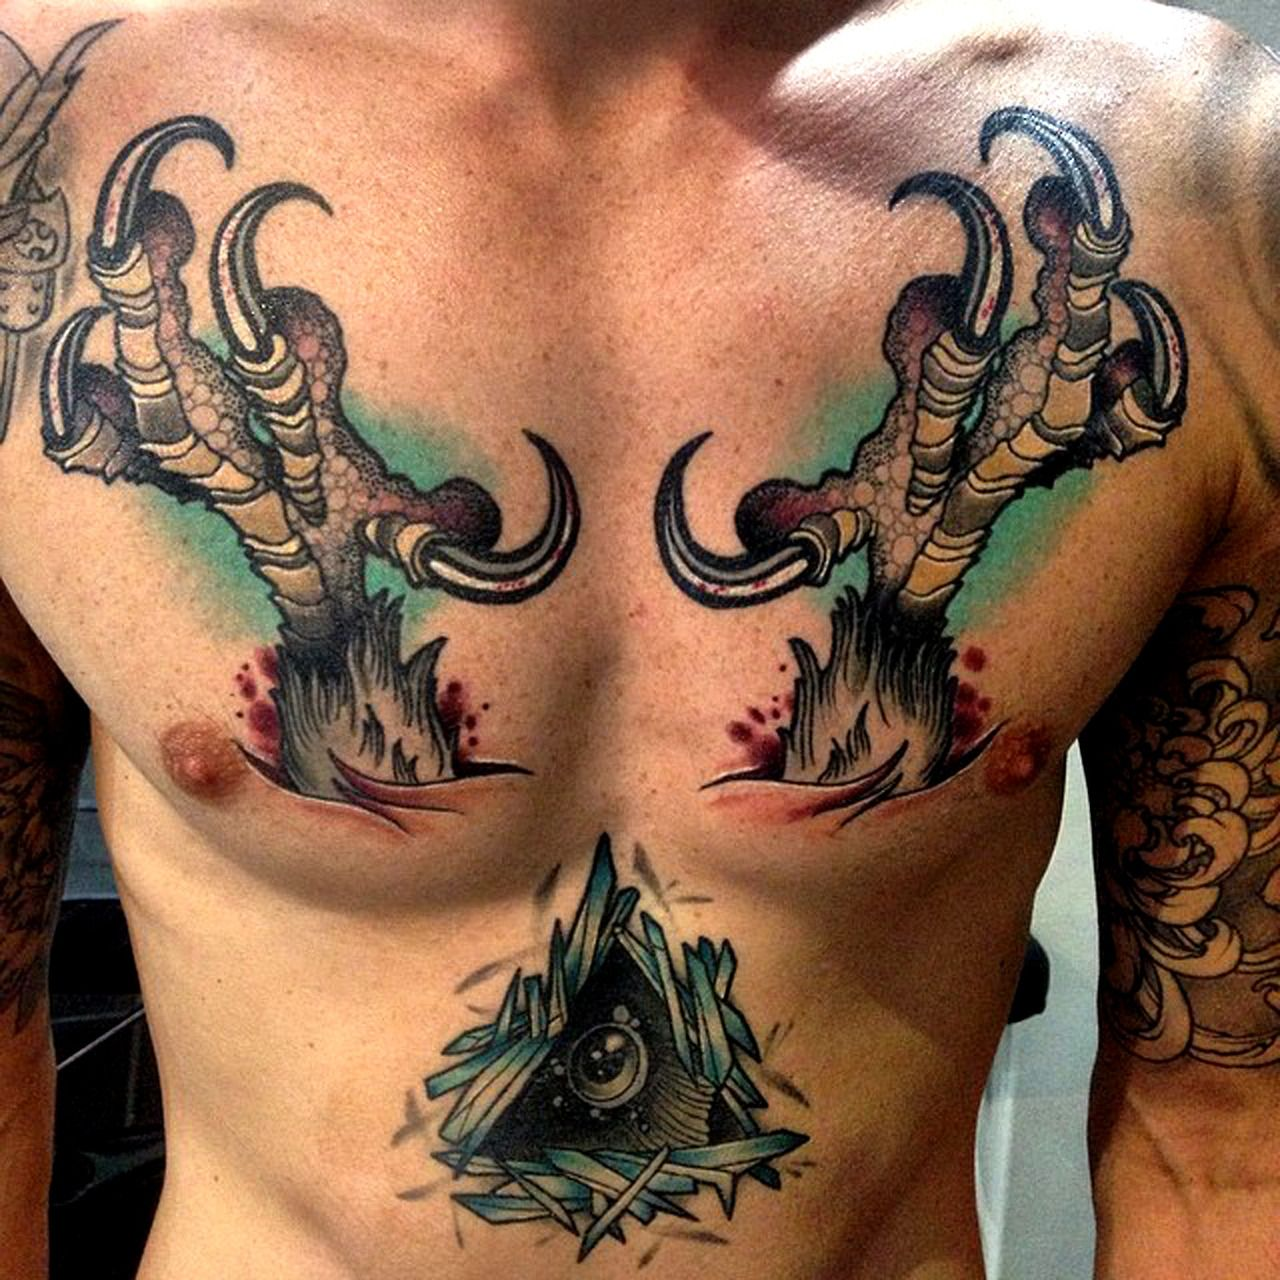 Tattoo ideas for male chest tattoo done by heath clifford  tatuajes hombres  pinterest  tattoo